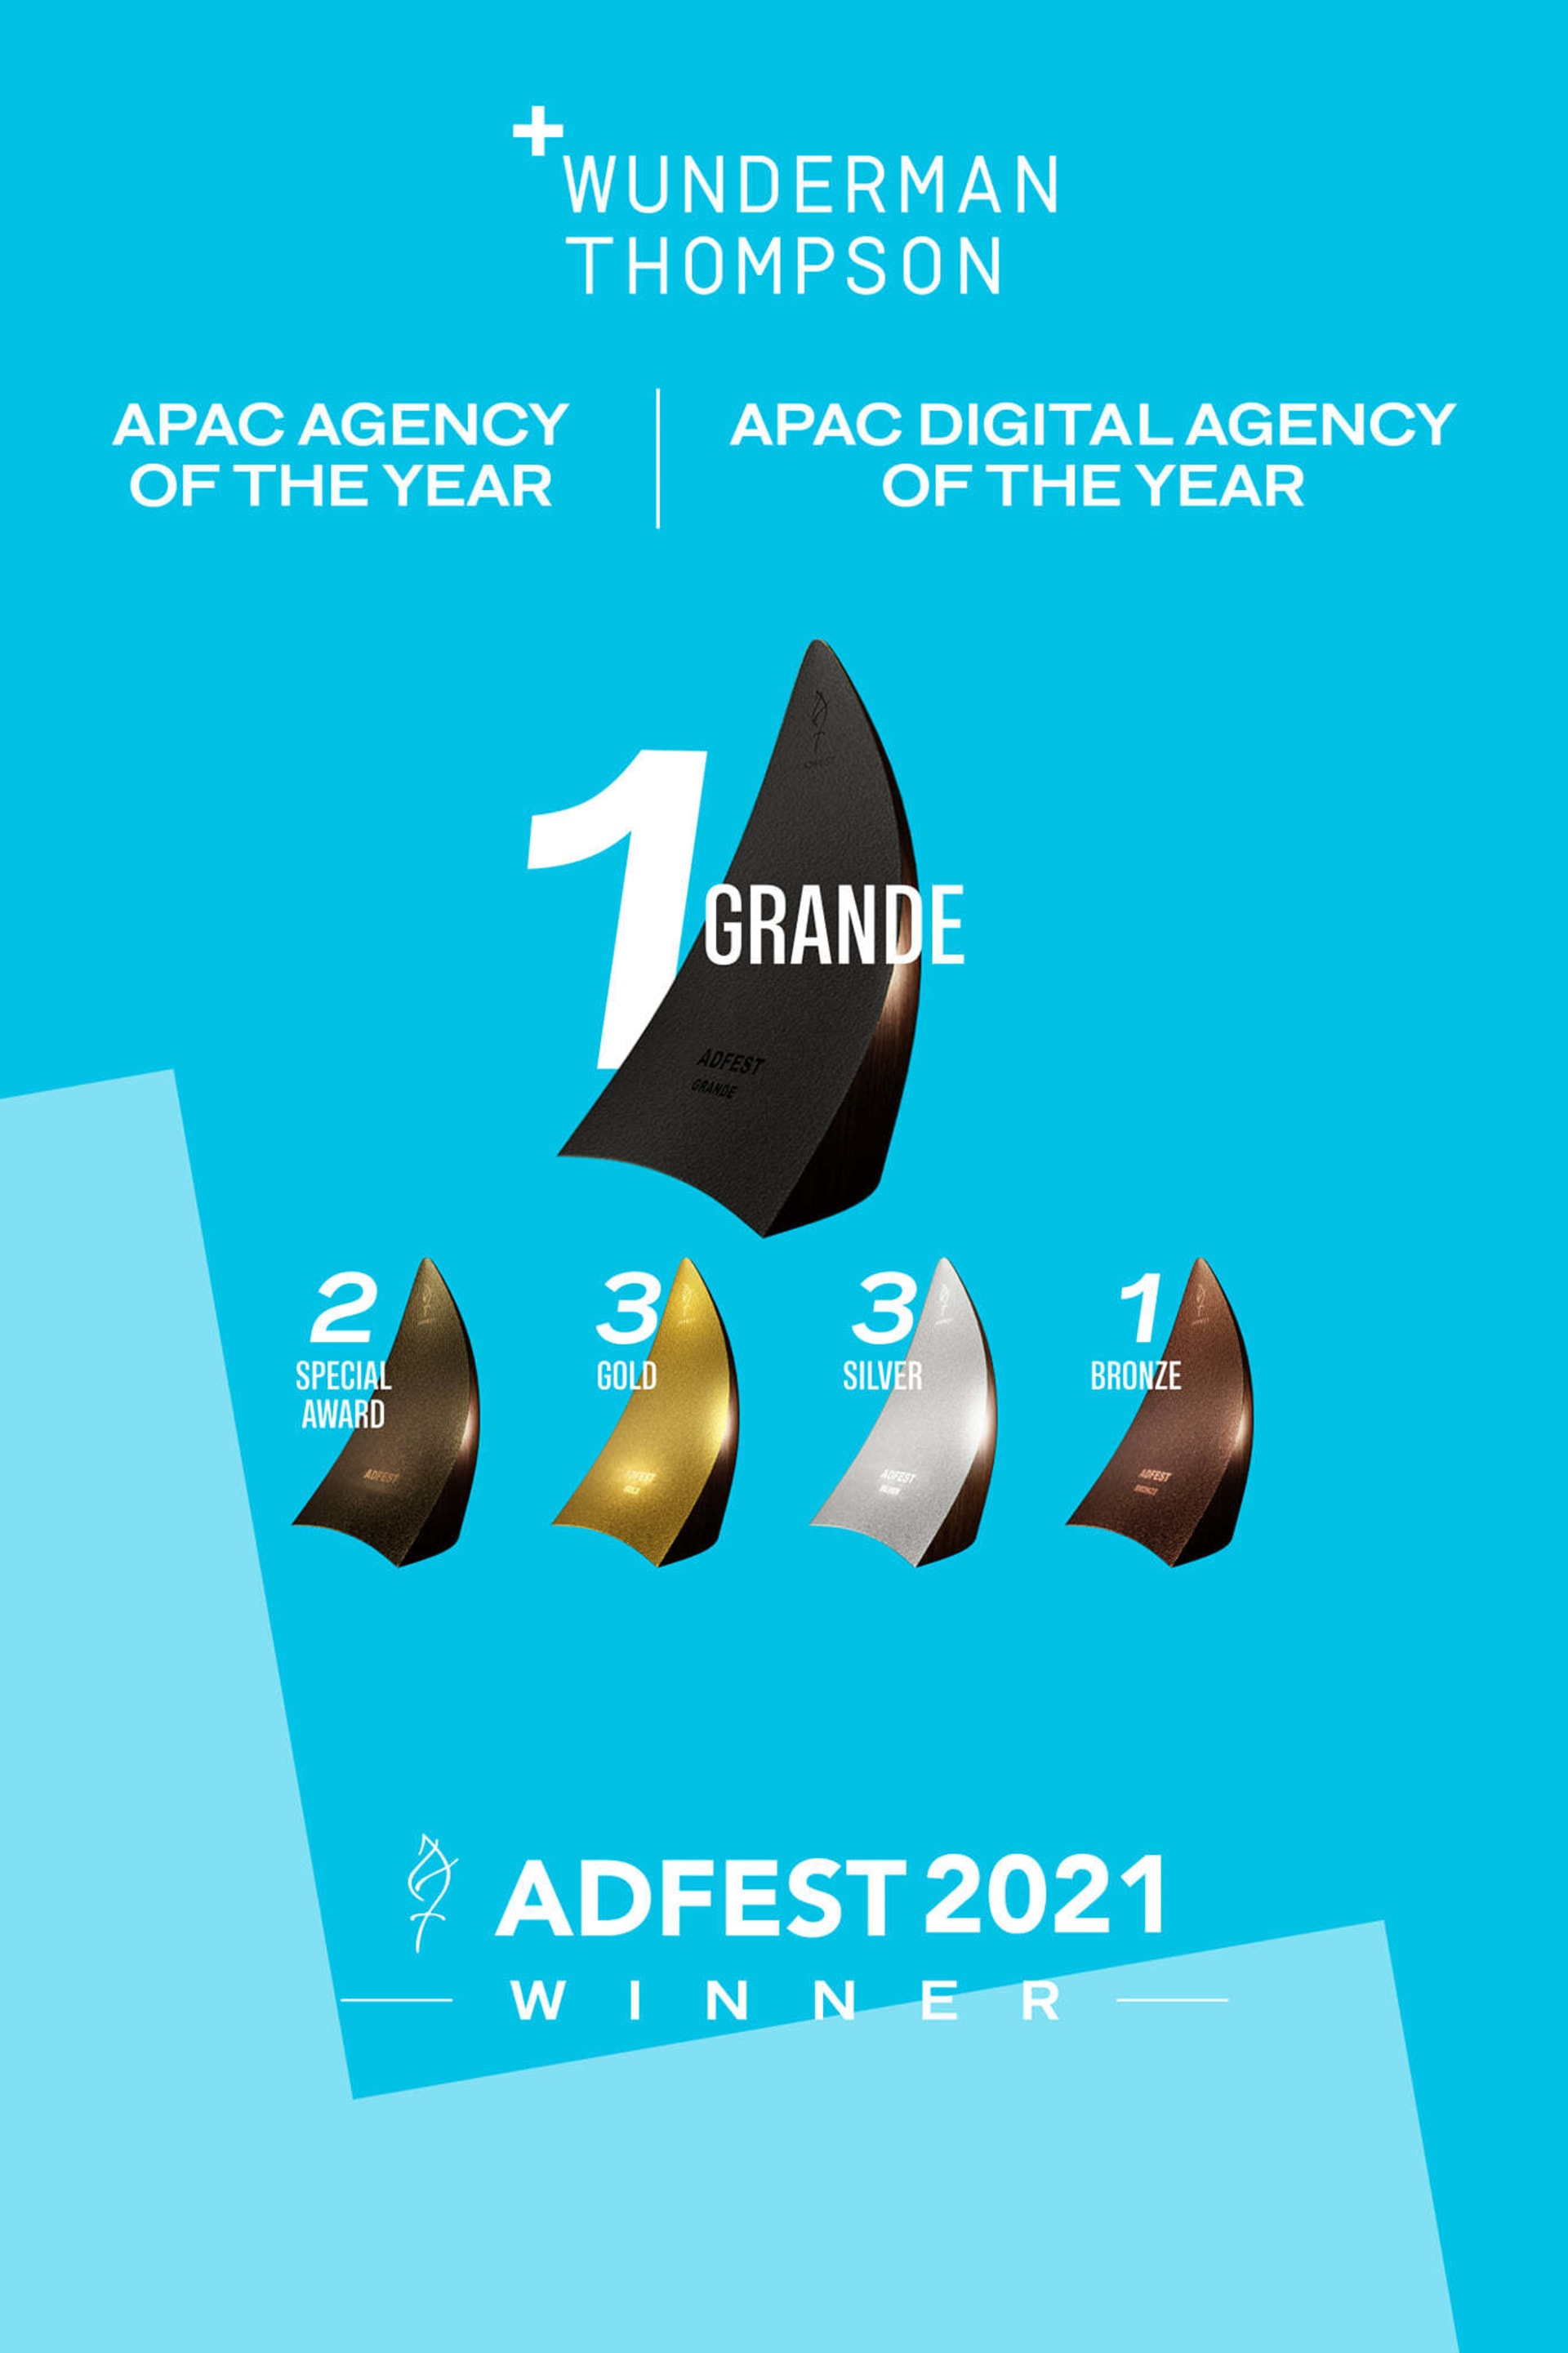 Agency of the year Ad Fest